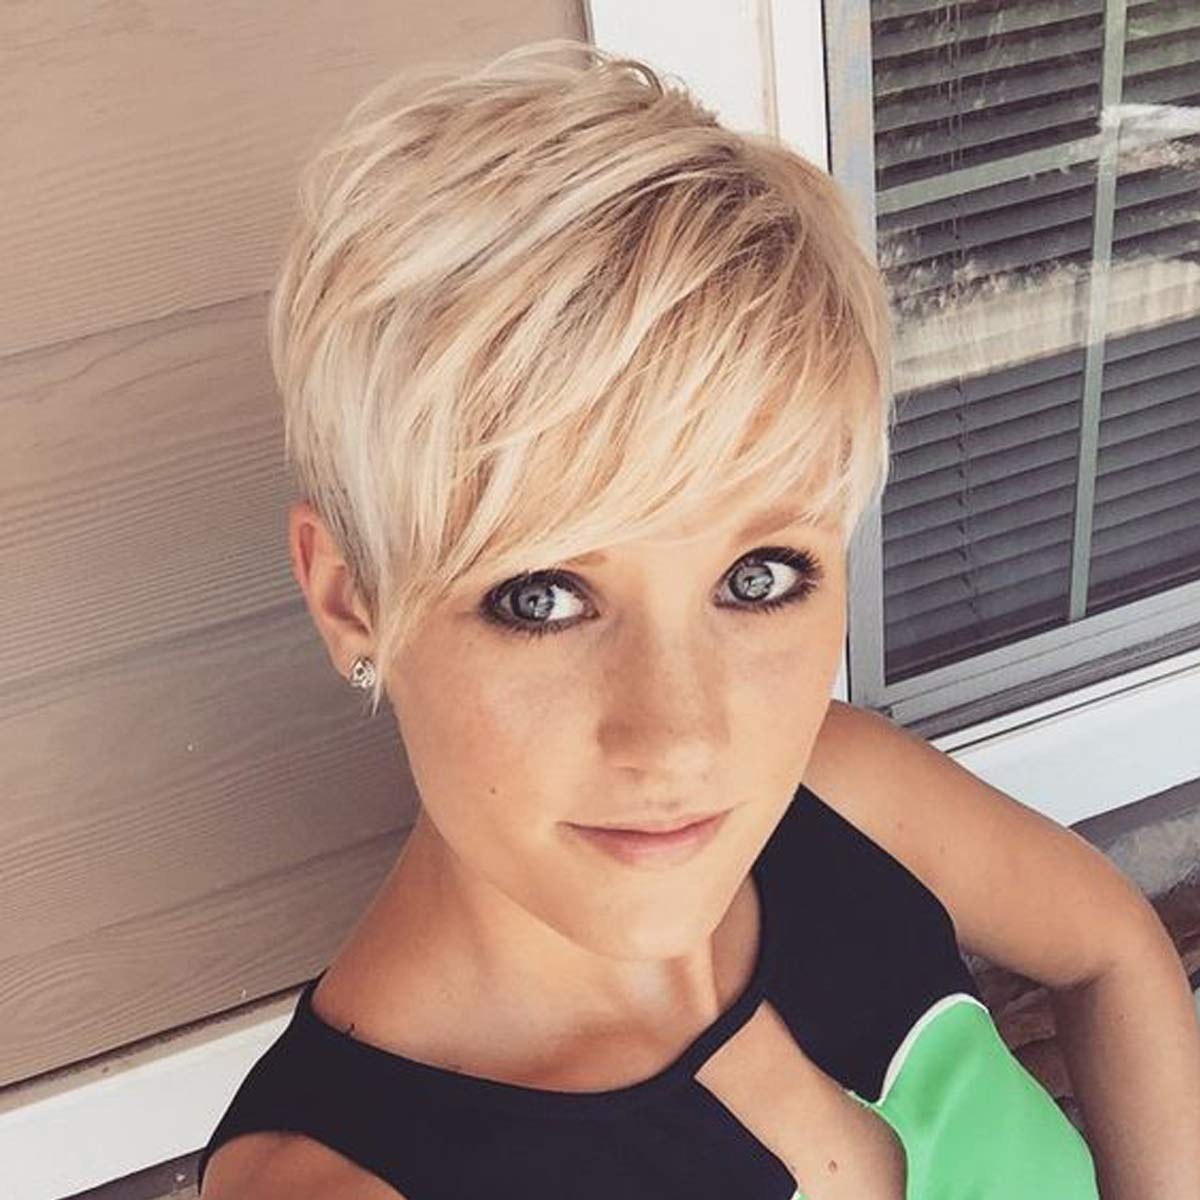 Amazon Com Creamily Short Pixie Cut Layered Wig With Bangs Synthetic Dark Roots Fluffy Full Replacement Hair For White Women Ash Blonde Lowlight With Root Stretch Beauty